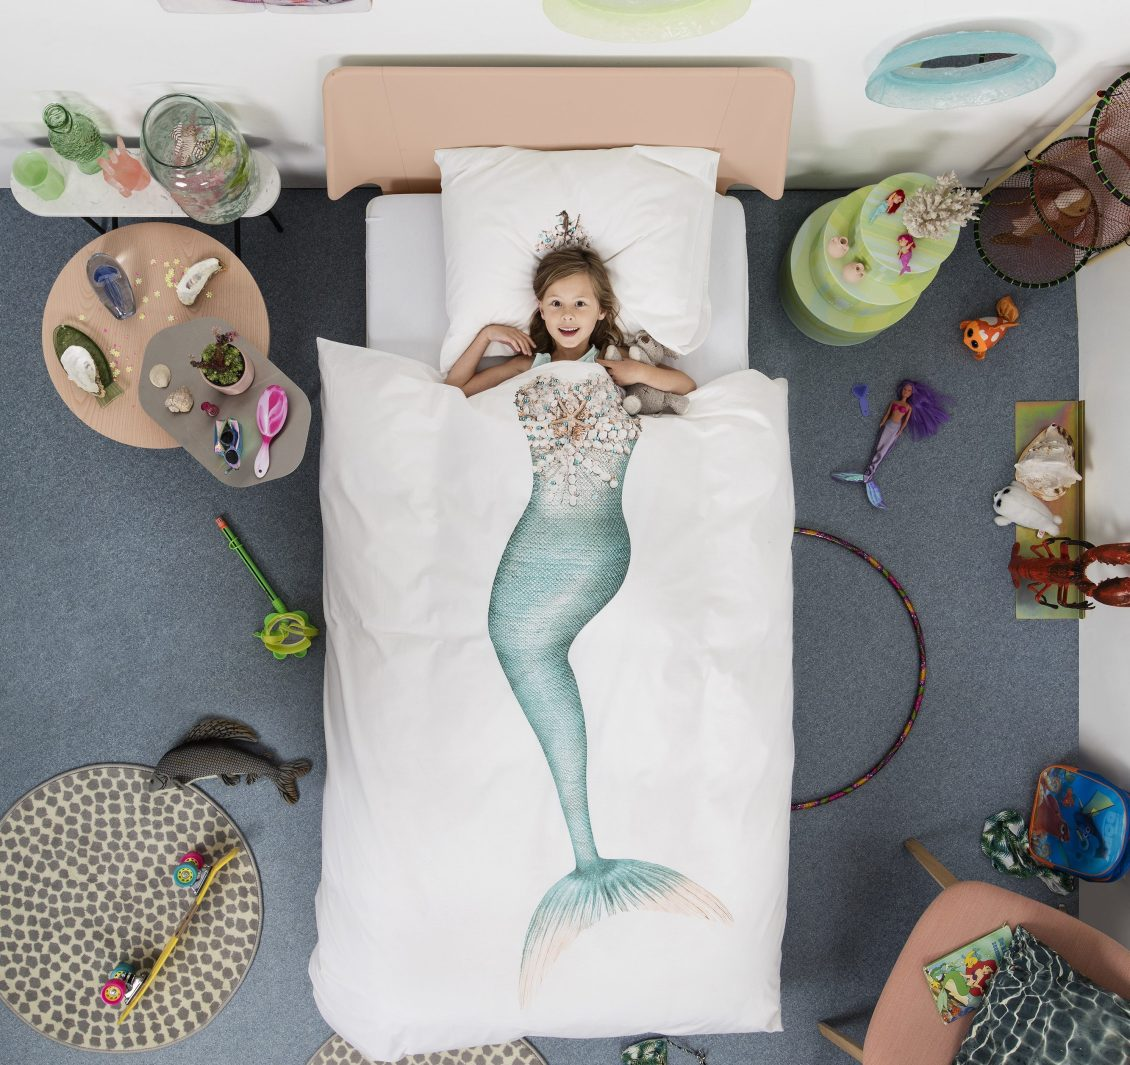 A little girl is seen laying in bed under a Mermaid duvet cover from Snurk Living